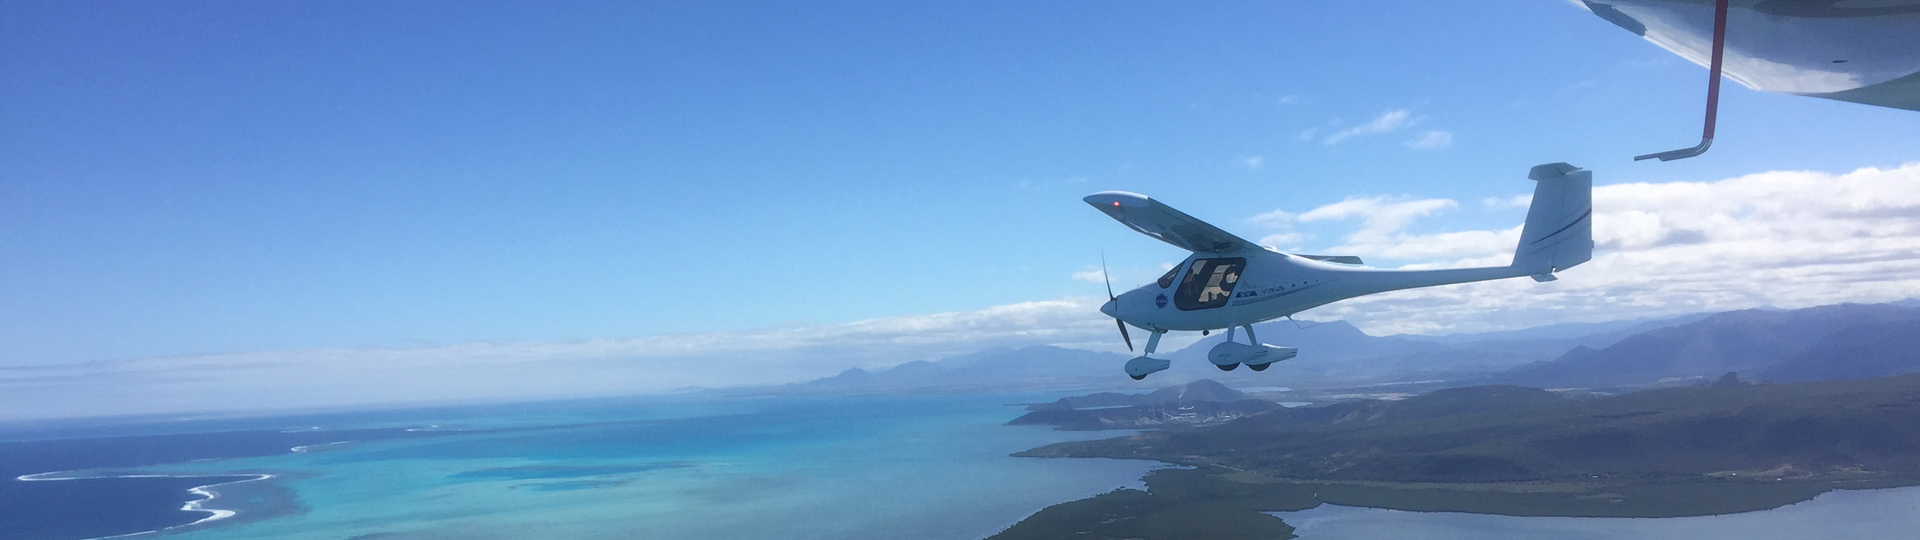 Ultralight flights in New Caledonia